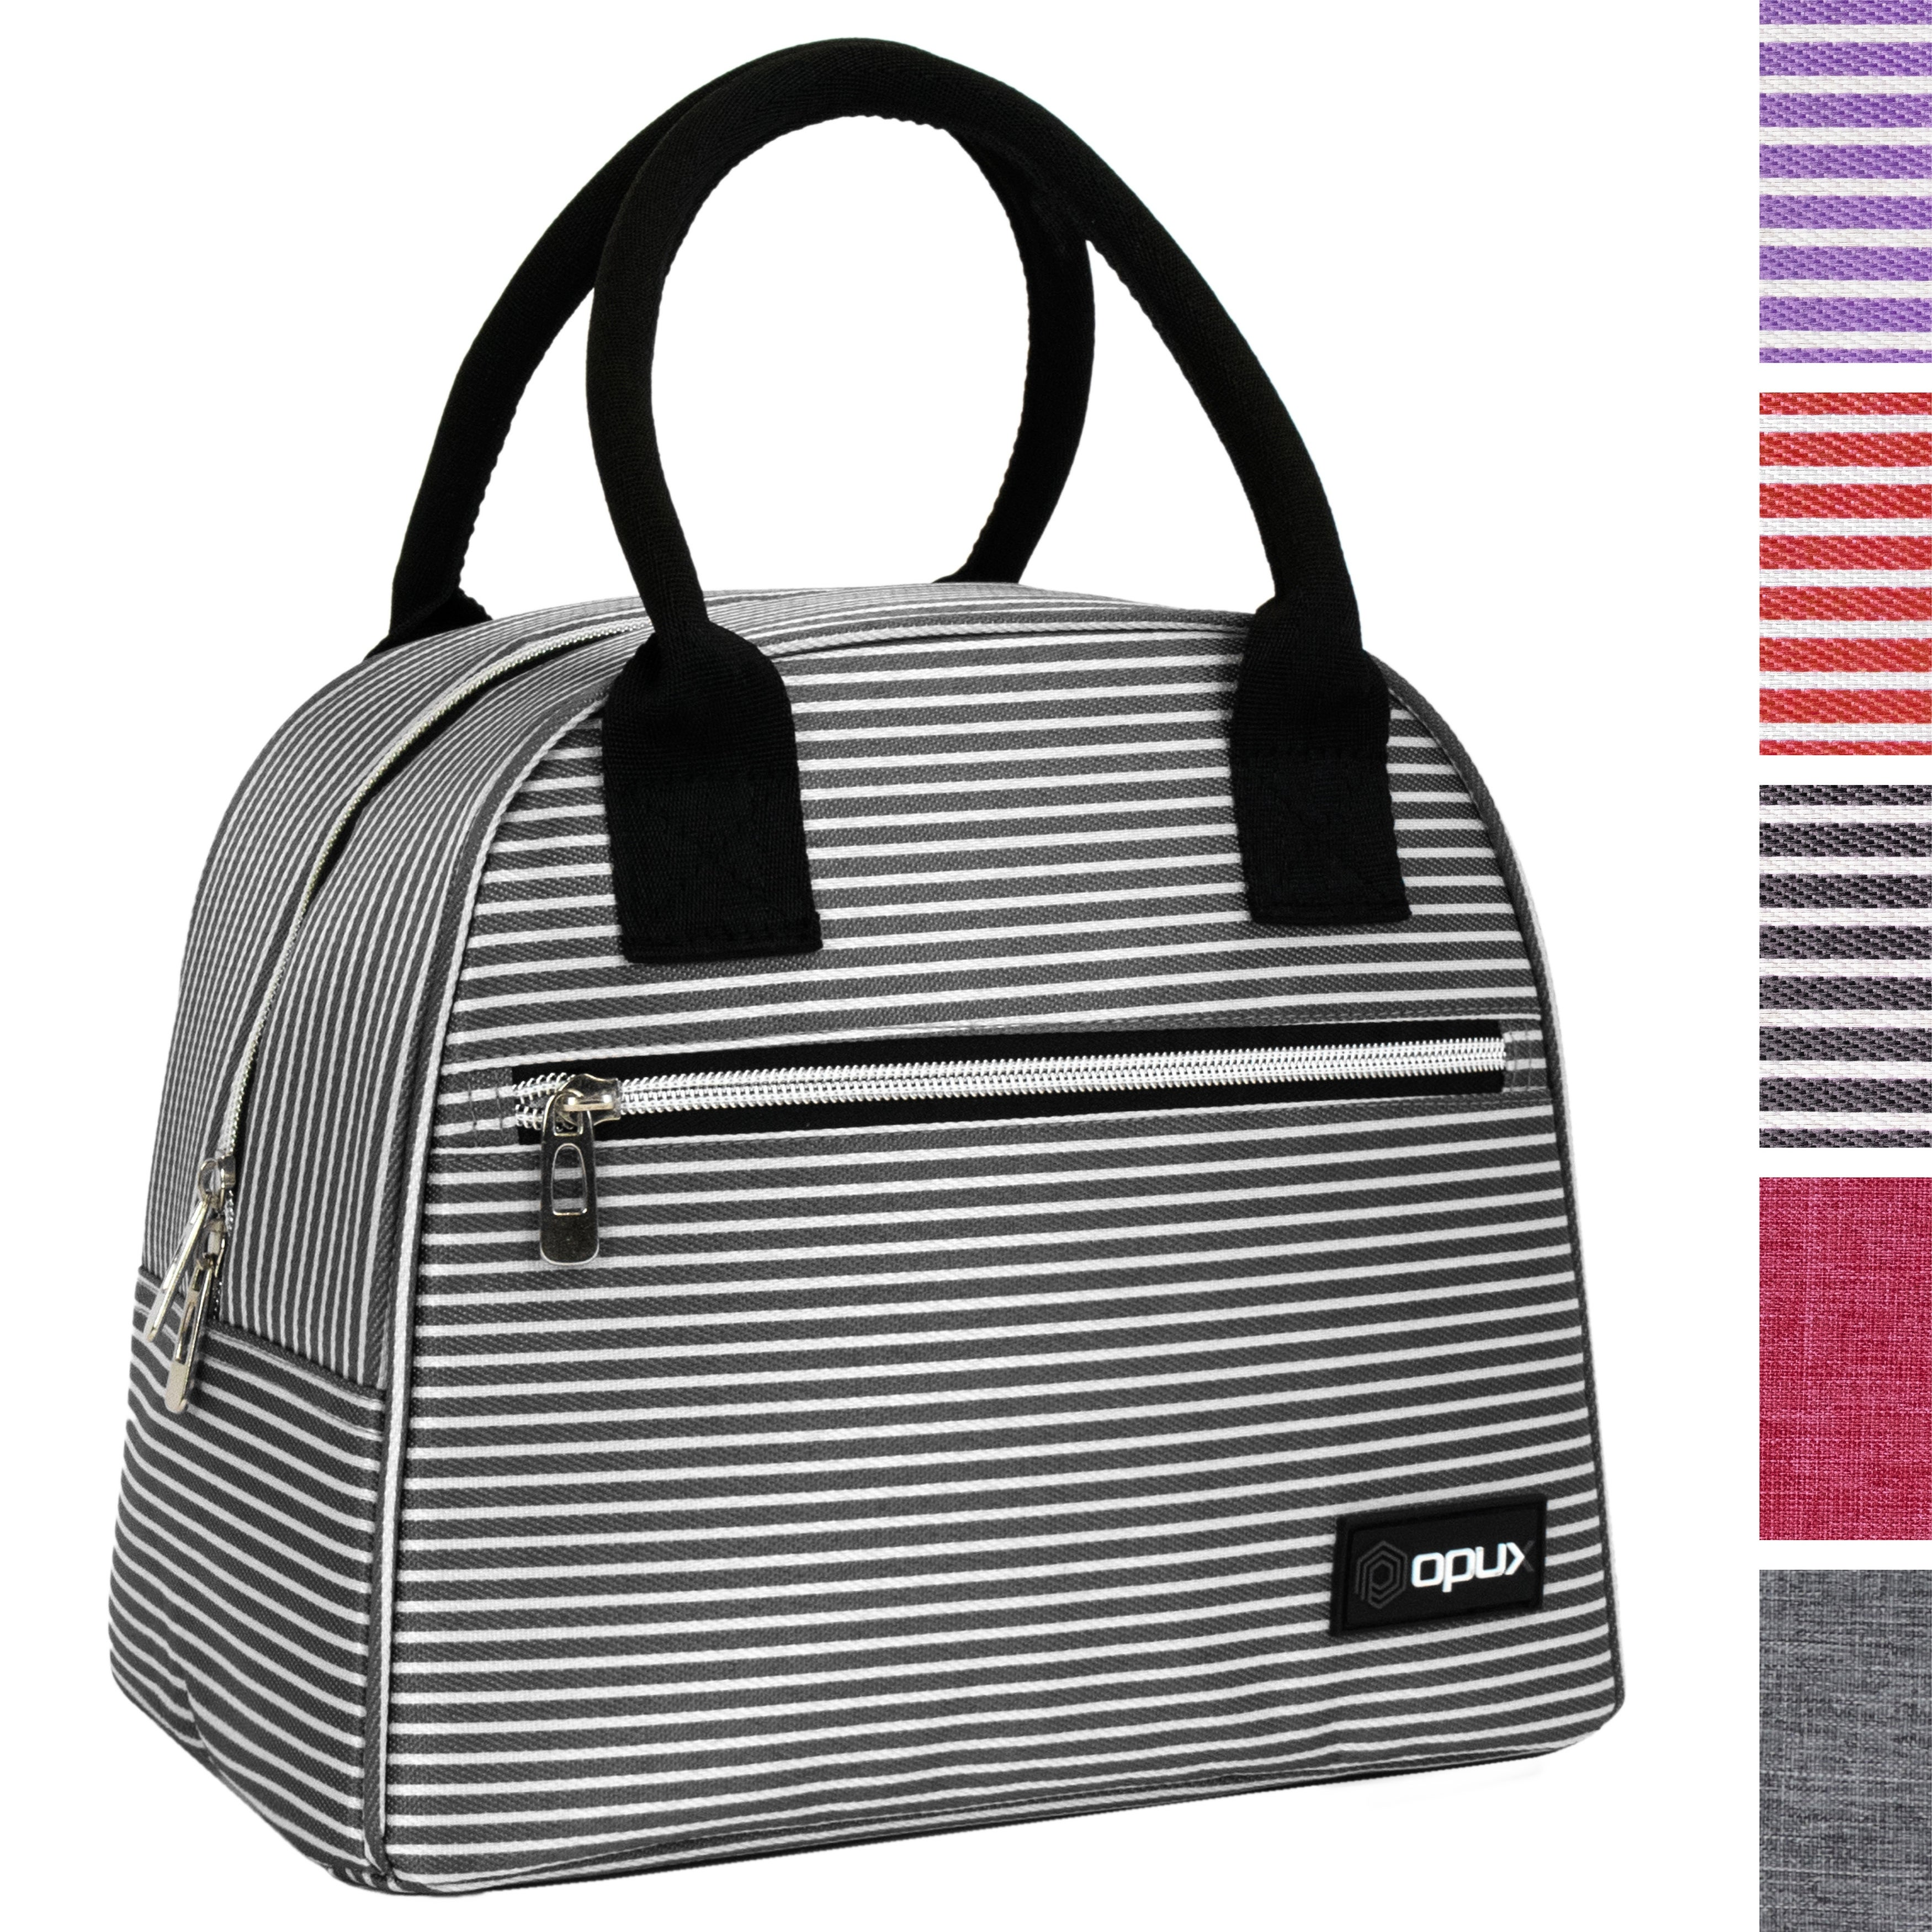 Lunch Bags Find Great Deals Ping At